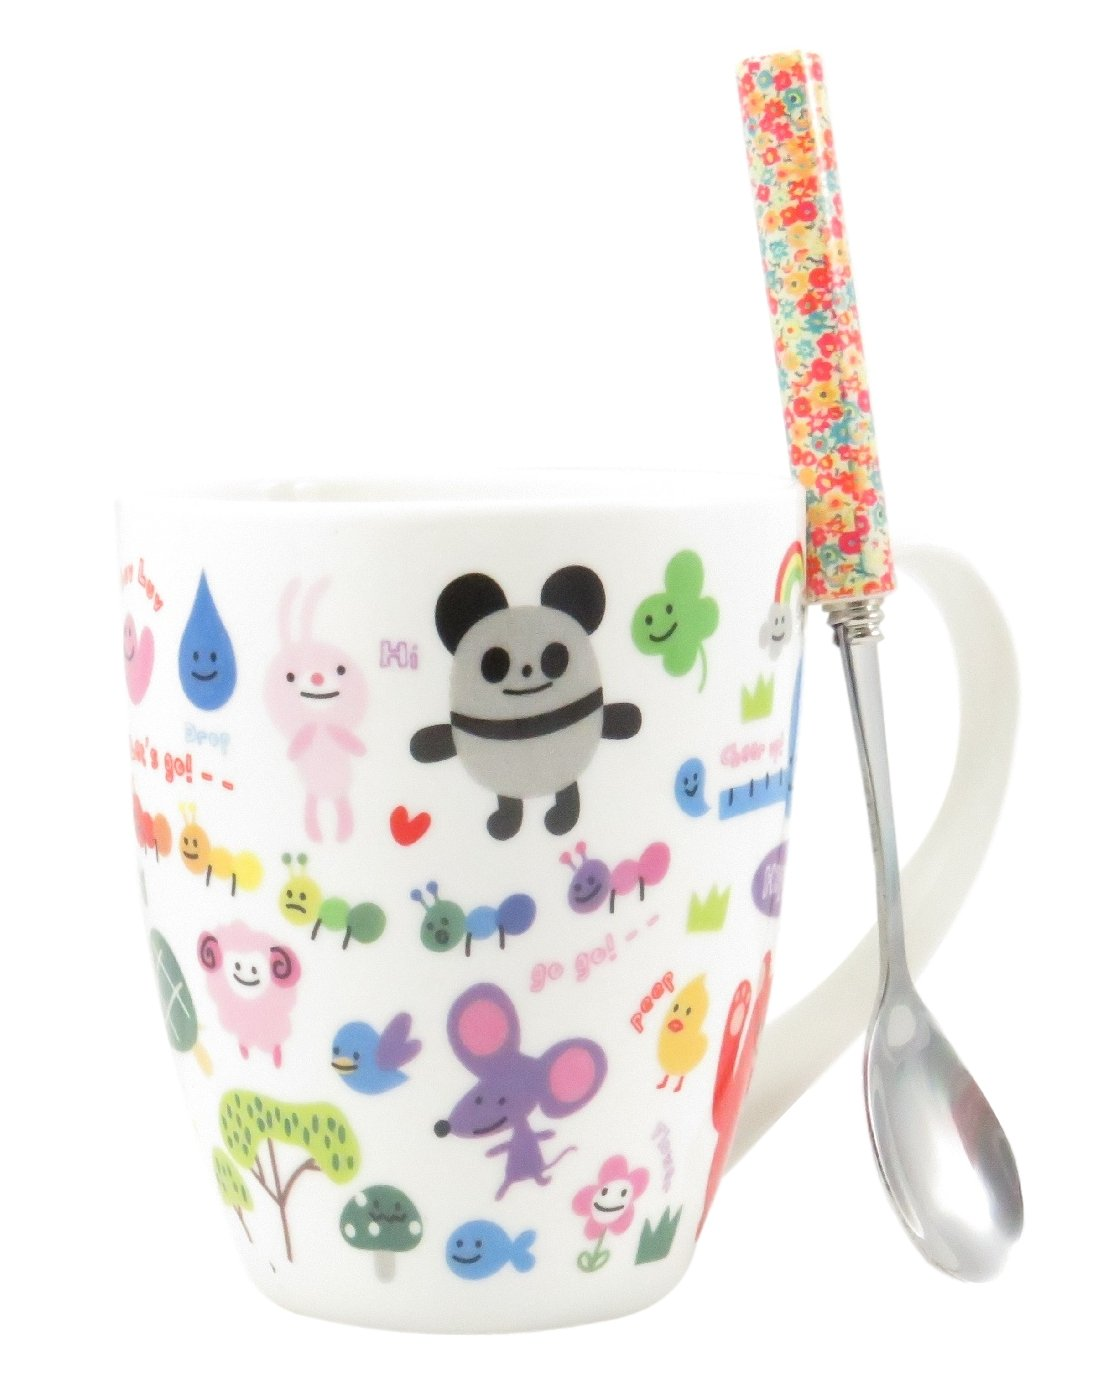 Cute Animal Ceramic Tea Coffee Mug Cup Kids Adults 11 Fl Oz with Flower Spoons (3 Piece Set) by Daiso